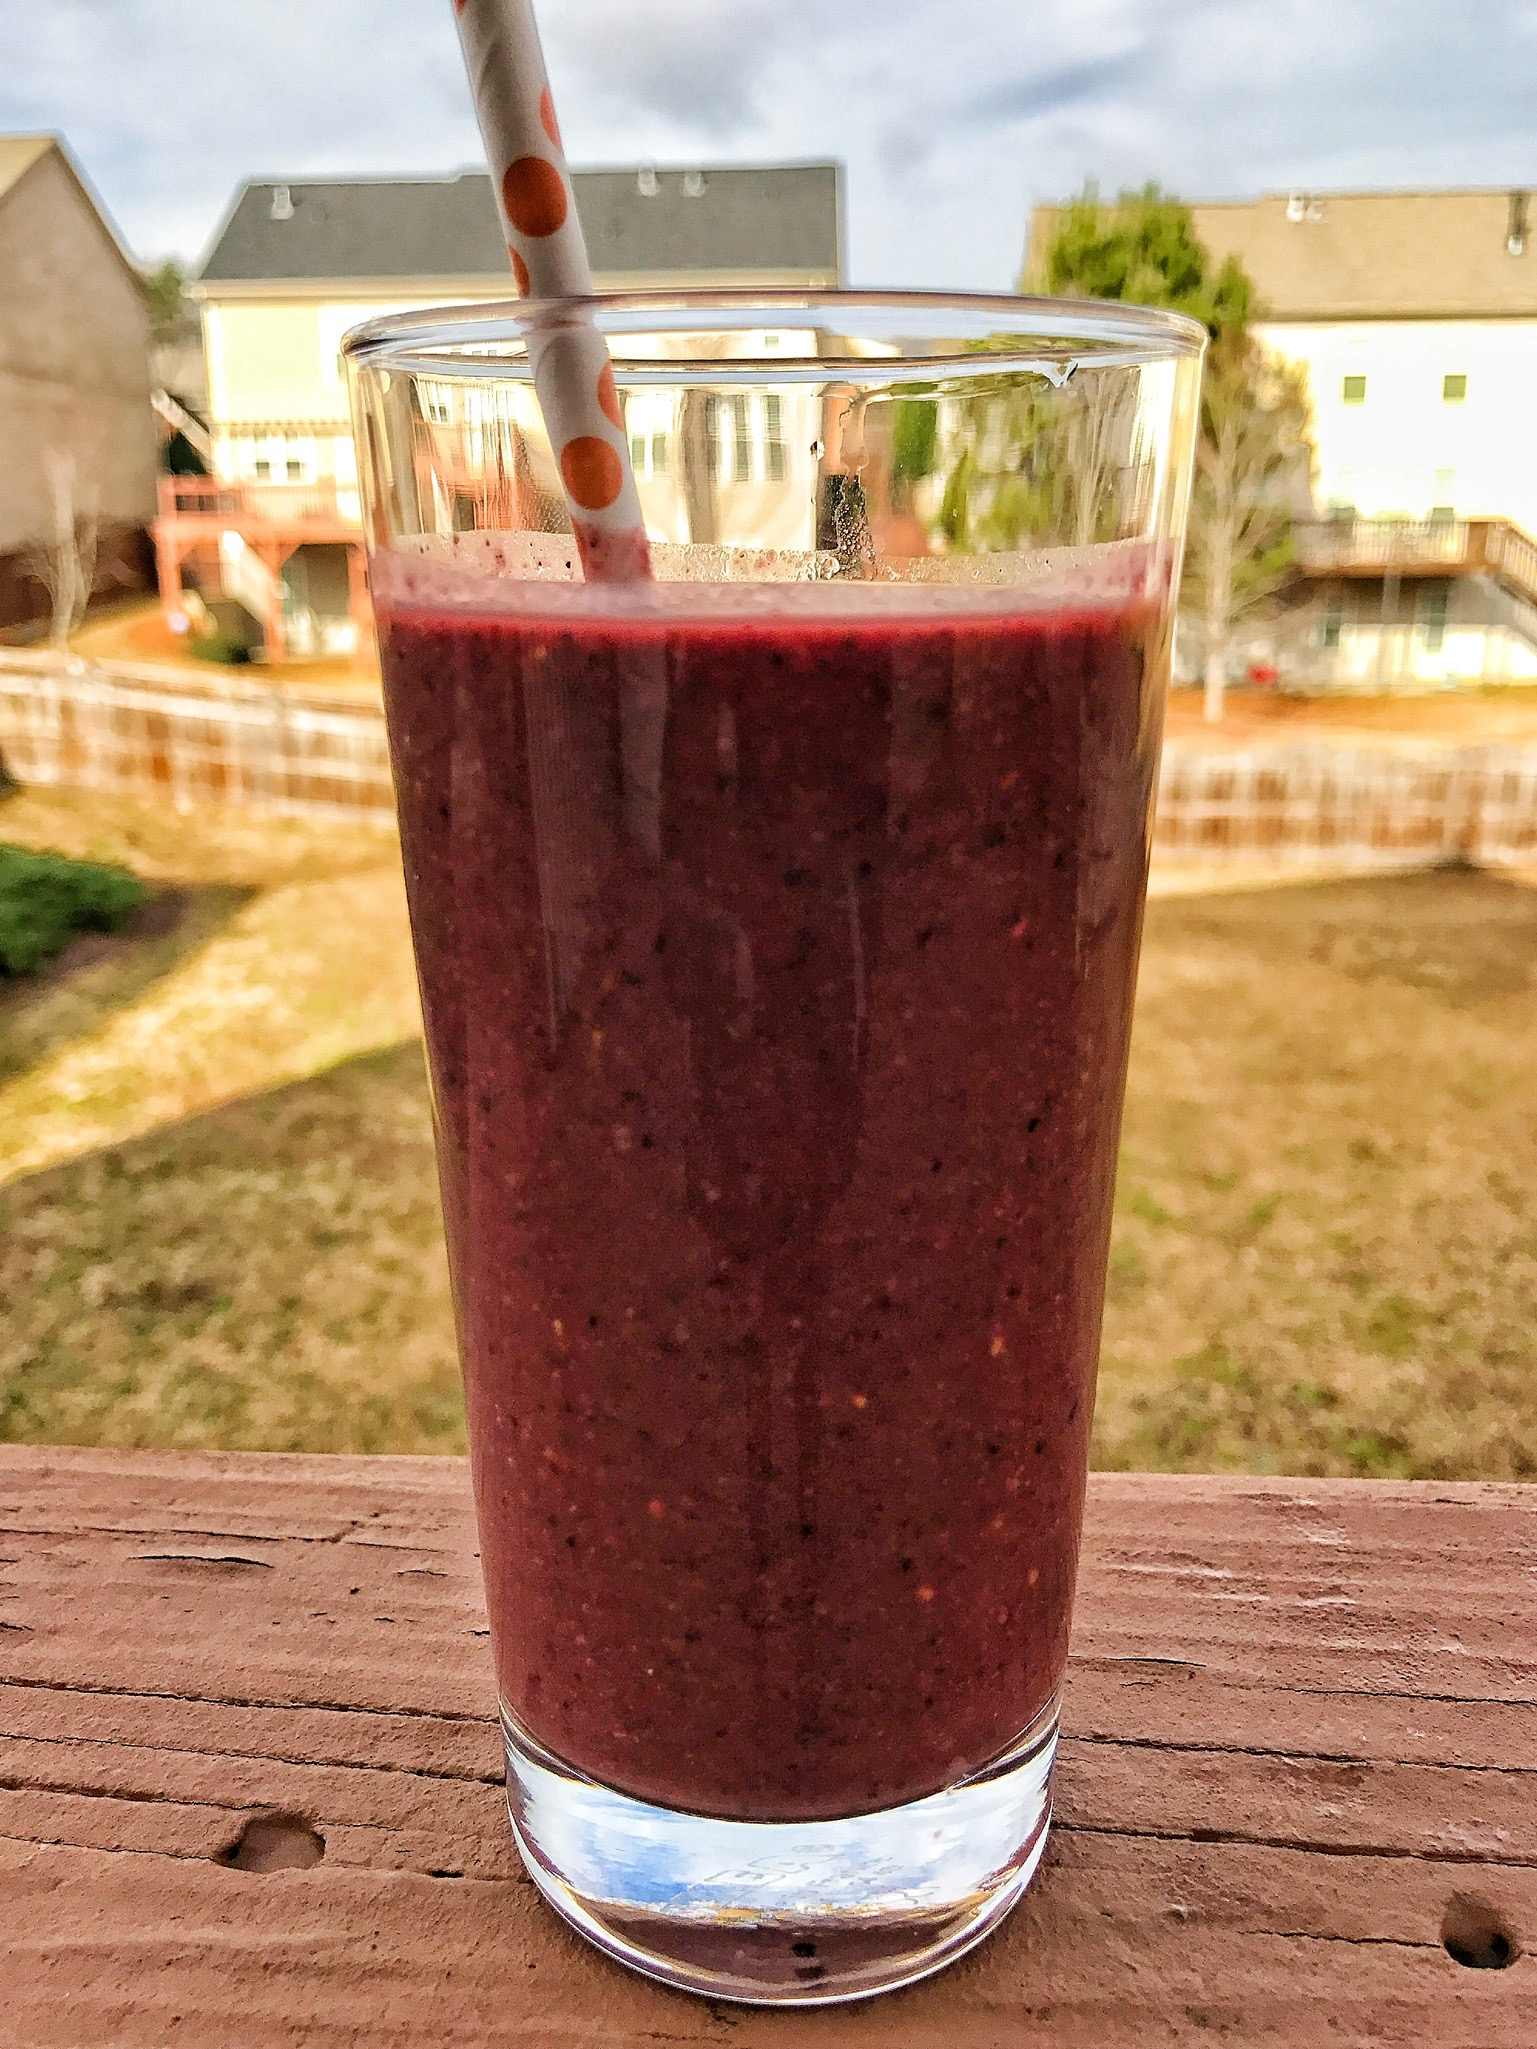 14 Ingredient Morning Smoothie Meal Replacement